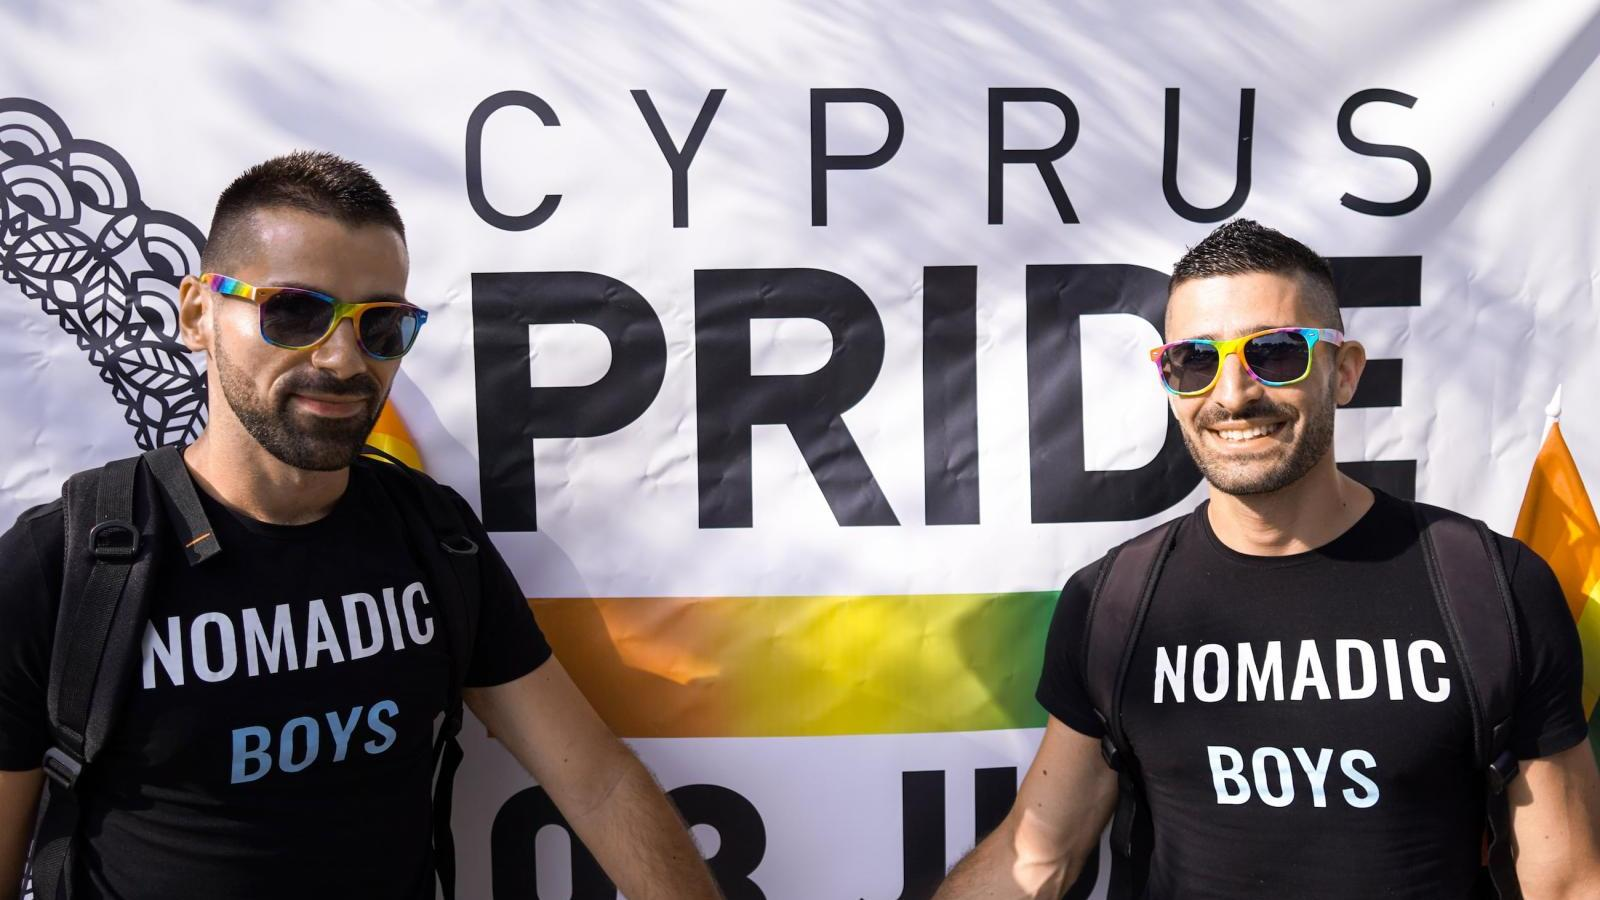 Cyprus has a gay Pride event that is getting better every year